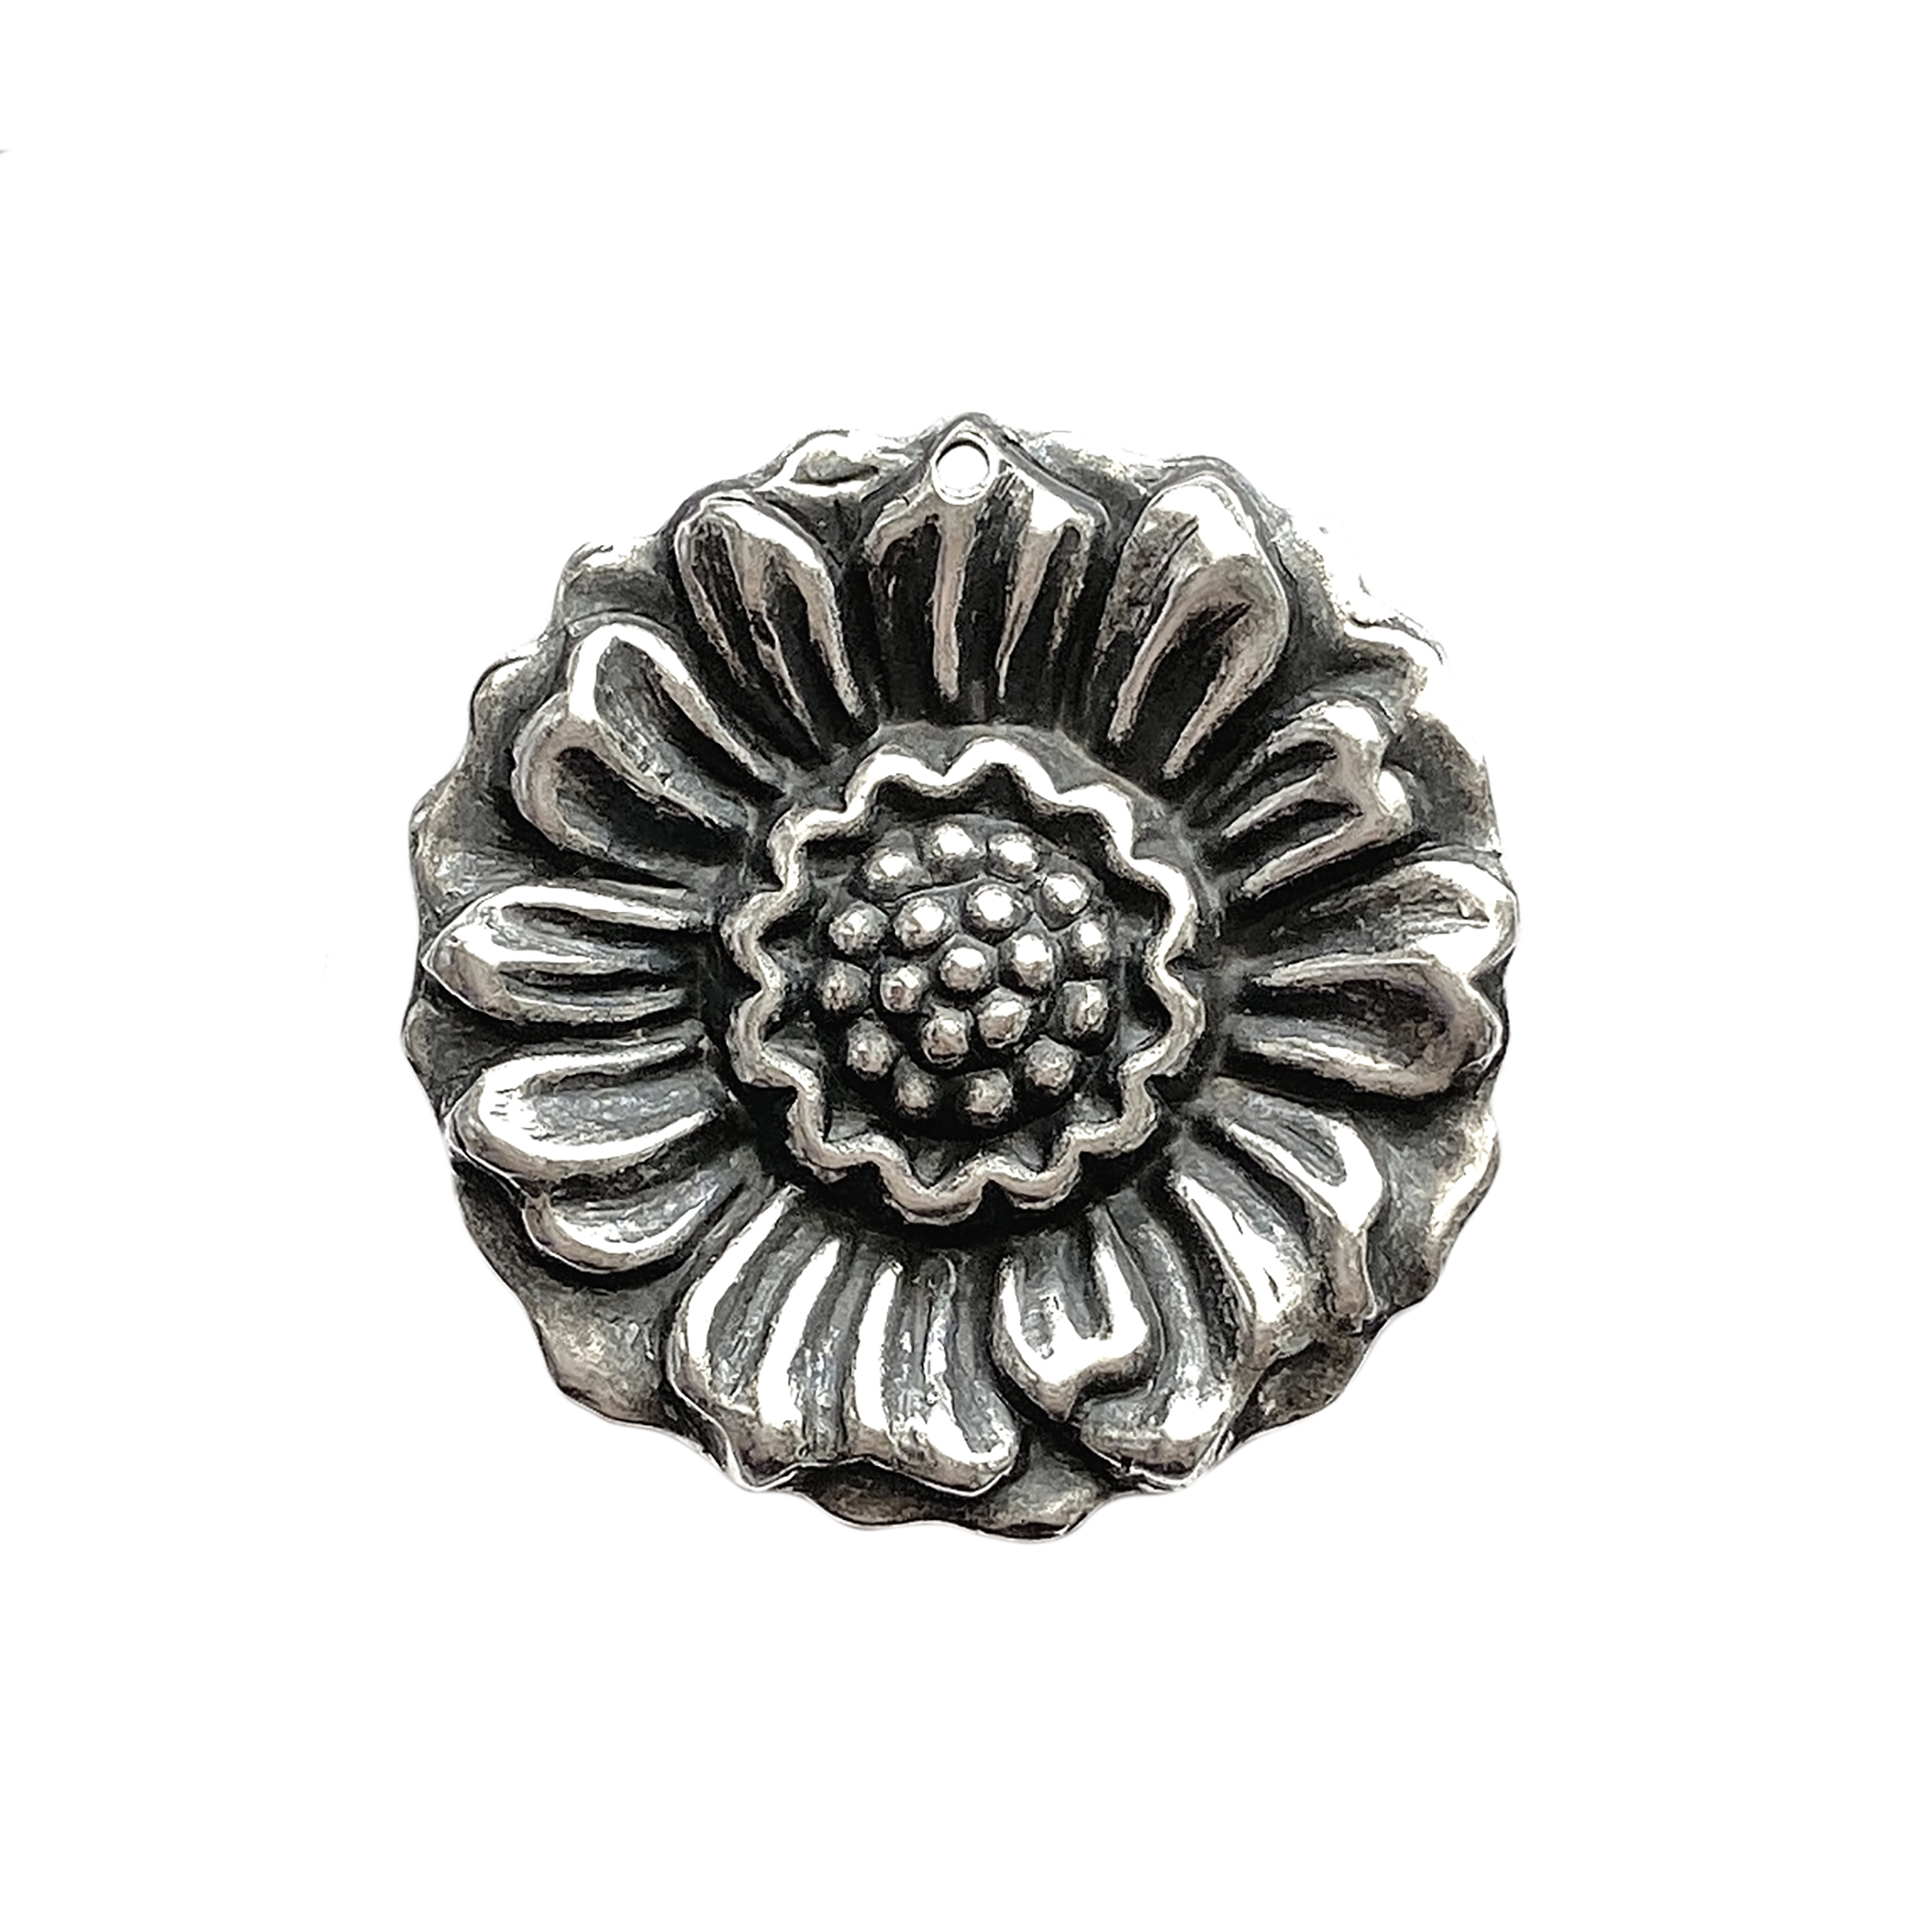 sunflower pendant, drilled, antique silver, silverware silverplate, silverware, silverplate, silver, pendant, sunflower, nickle free, US made, flower pendant, flower, brass, 30mm, jewelry making, vintage supplies, jewelry supplies, B'sue Boutiques, 02177